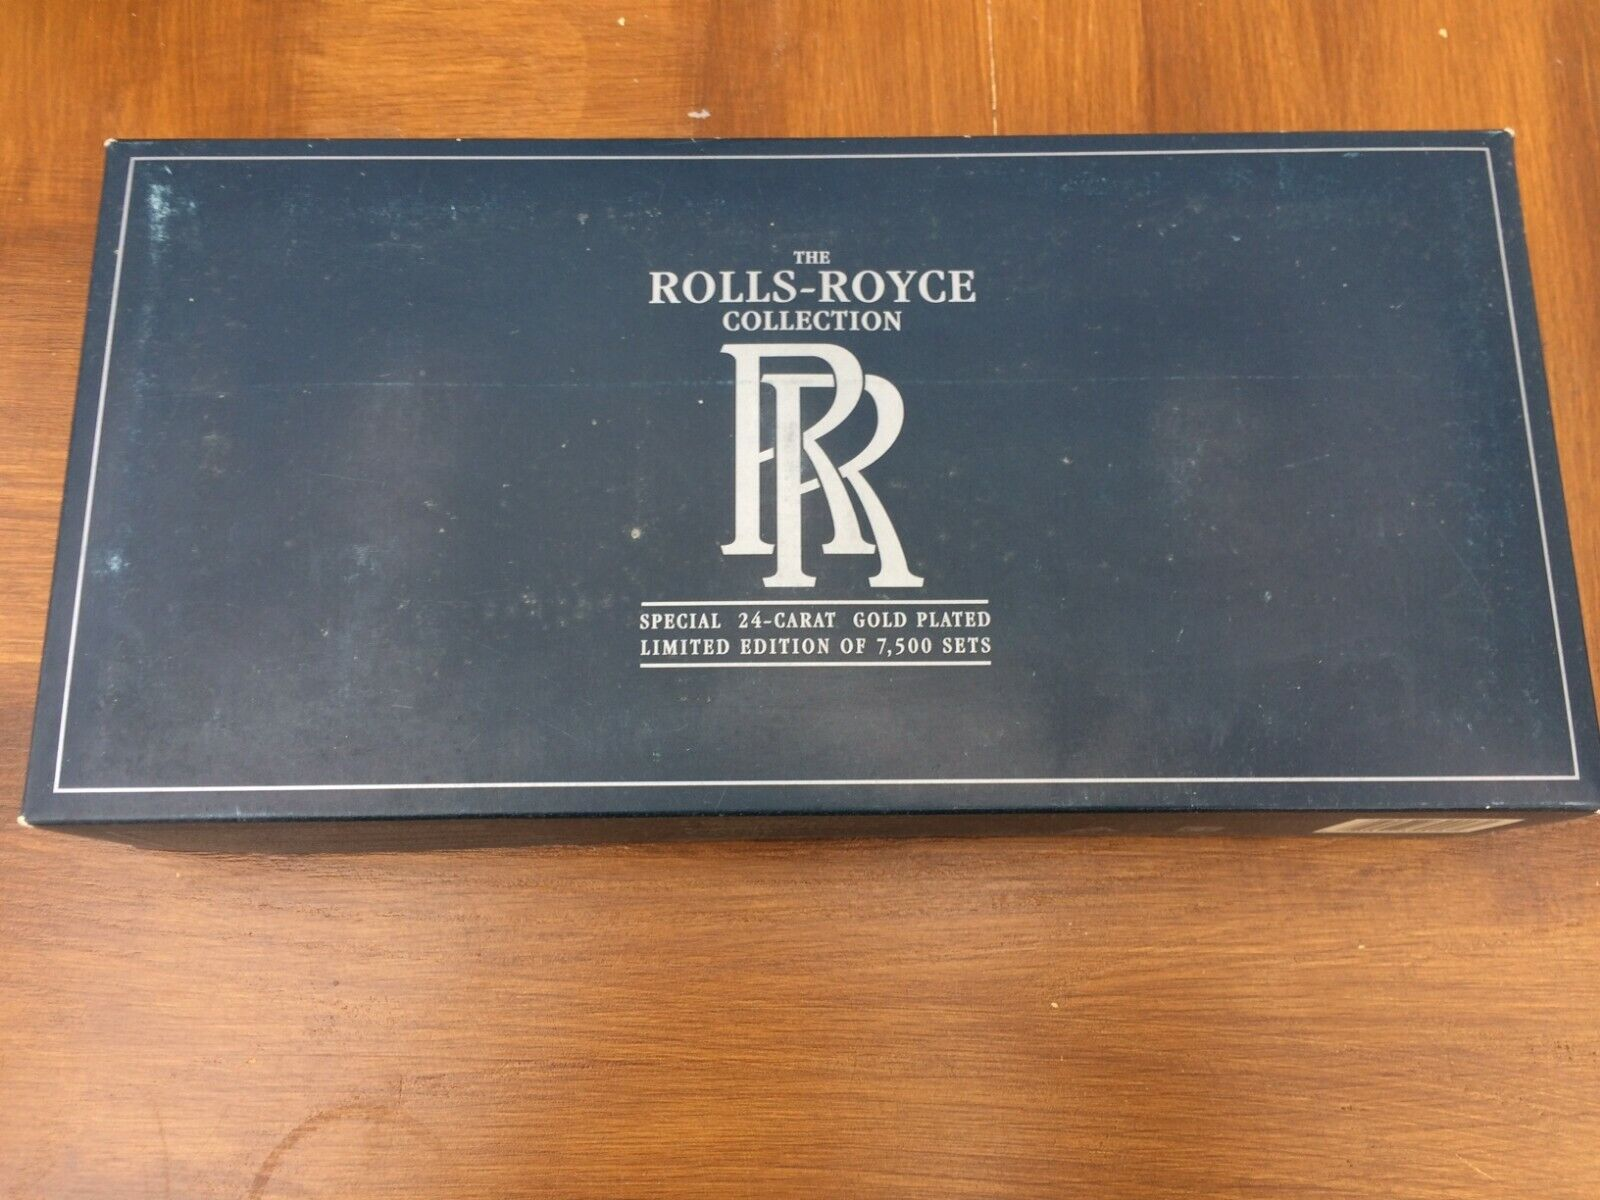 LLEDO RPL1003 gold Rolls Royce FD1004 Ford Millennium RAL1005 RAL1005 RAL1005 Raleigh Cycle sets a2e486